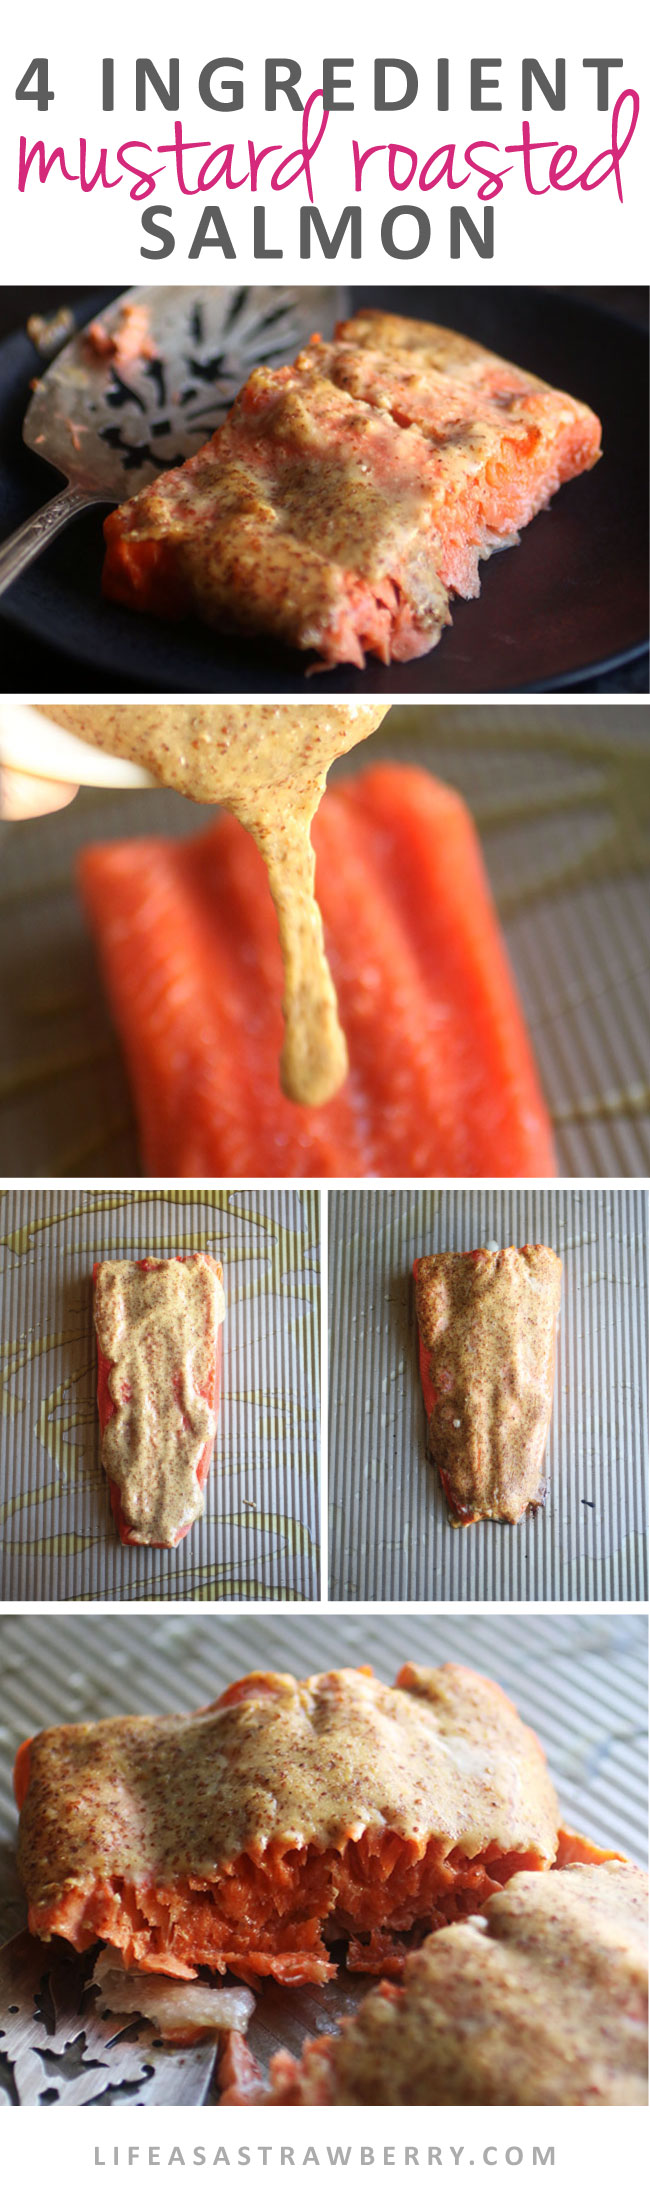 4 Ingredient Mustard Roasted Salmon - This easy baked salmon recipe is healthy and perfect for busy weeknights - and with only four ingredients! A simple, healthy mustard and maple syrup sauce brings out the flavor of the fish and makes for a dish the whole family is sure to love. Oven baked salmon in less than half an hour. Serve with asparagus or your favorite side dish!   lifeasastrawberry.com